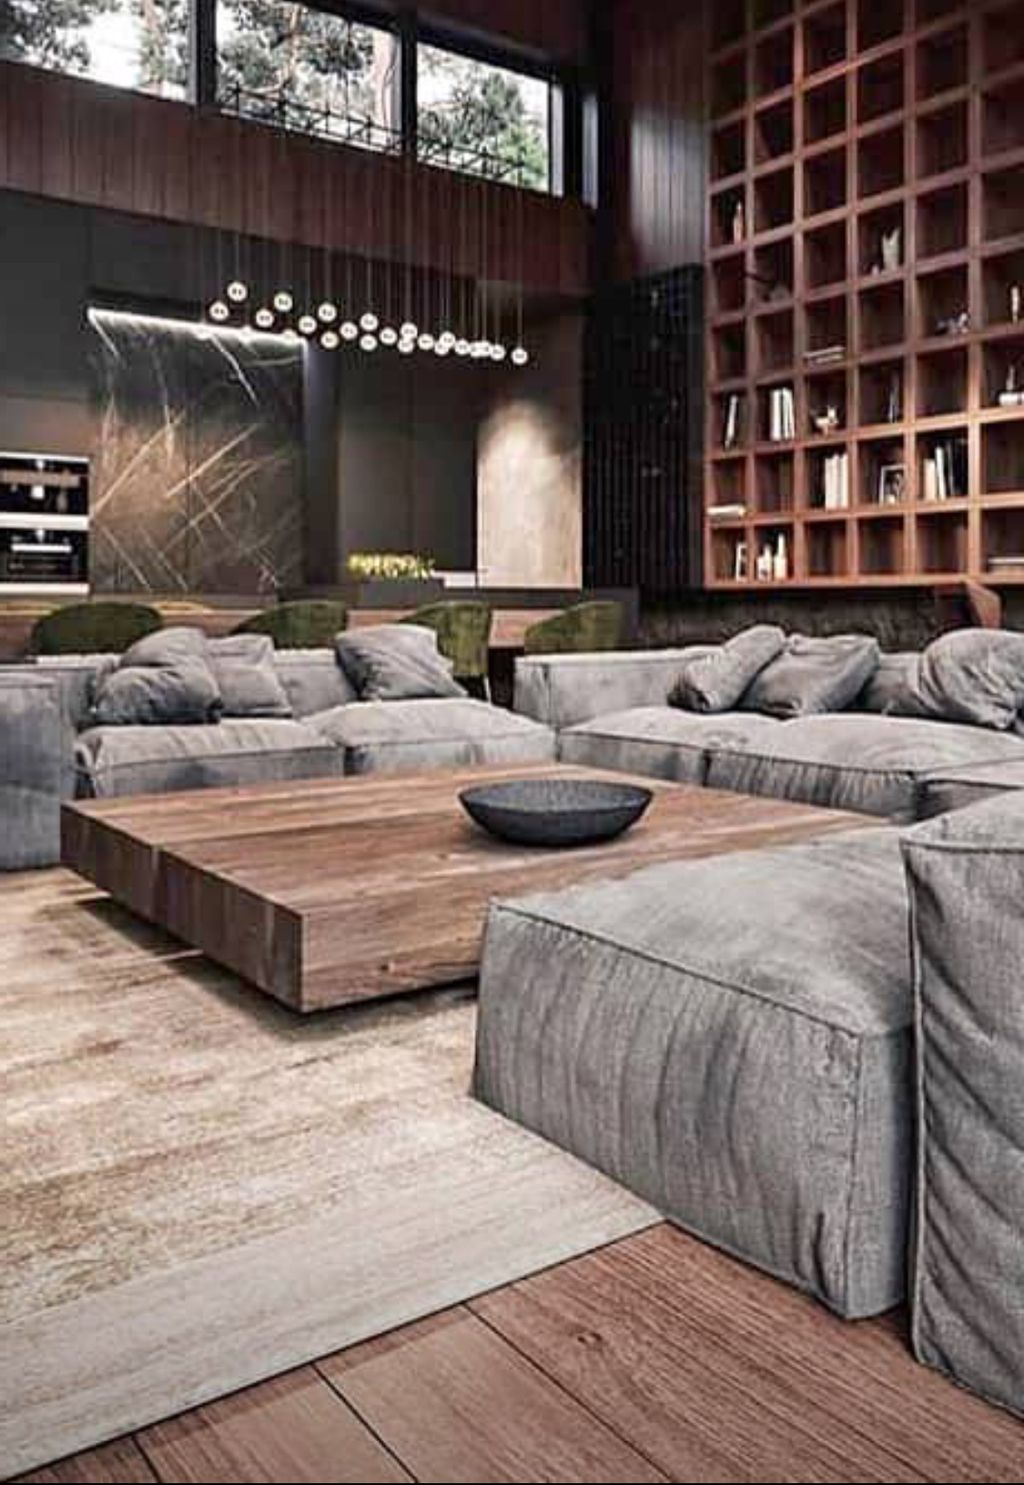 39 Cool Interior Design Ideas That Will Make Your Home More